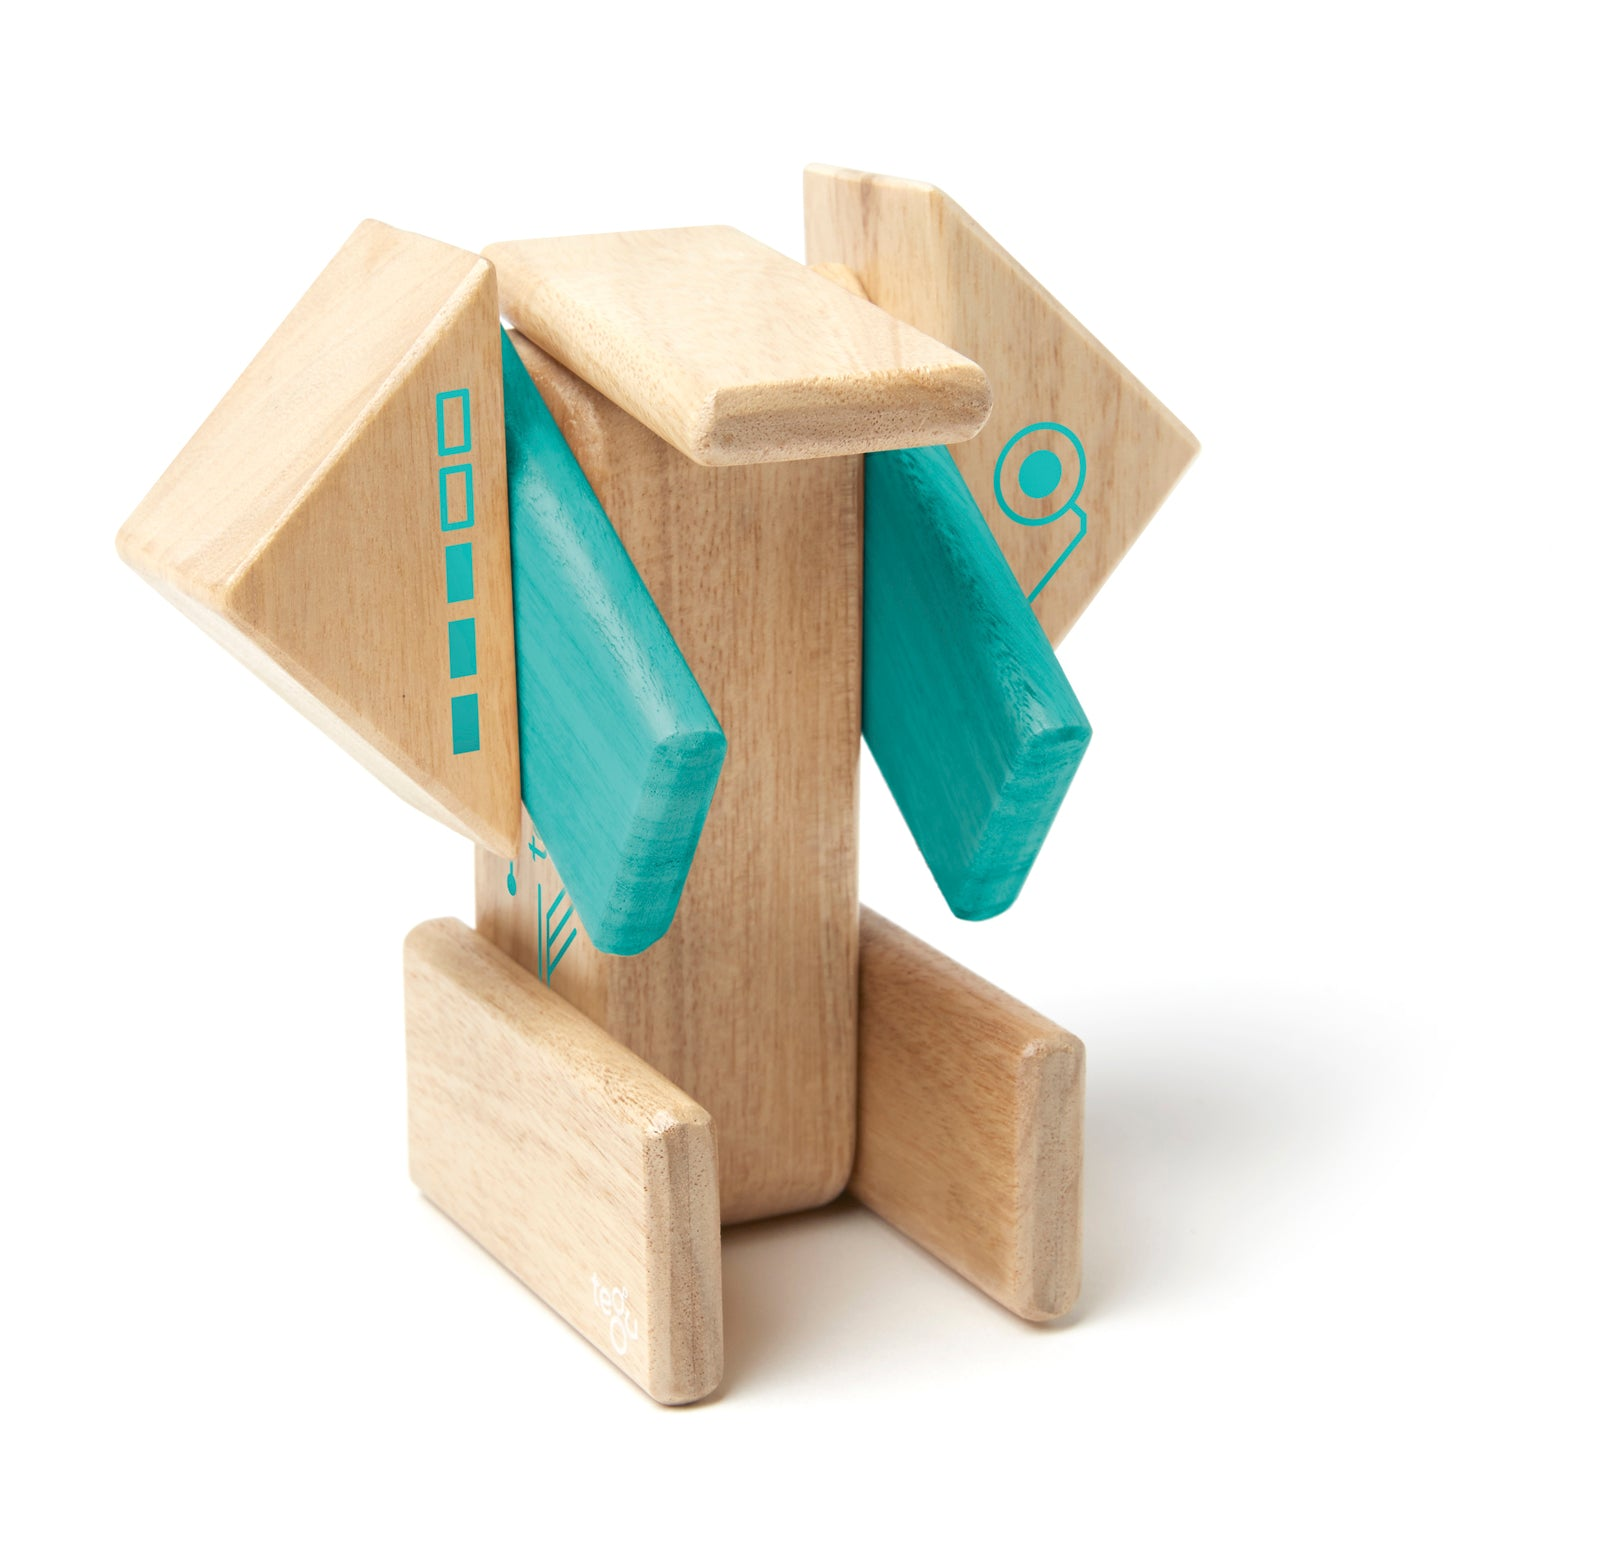 Tegu Robo Magnetic Wooden Block Set - WoodenToys.com